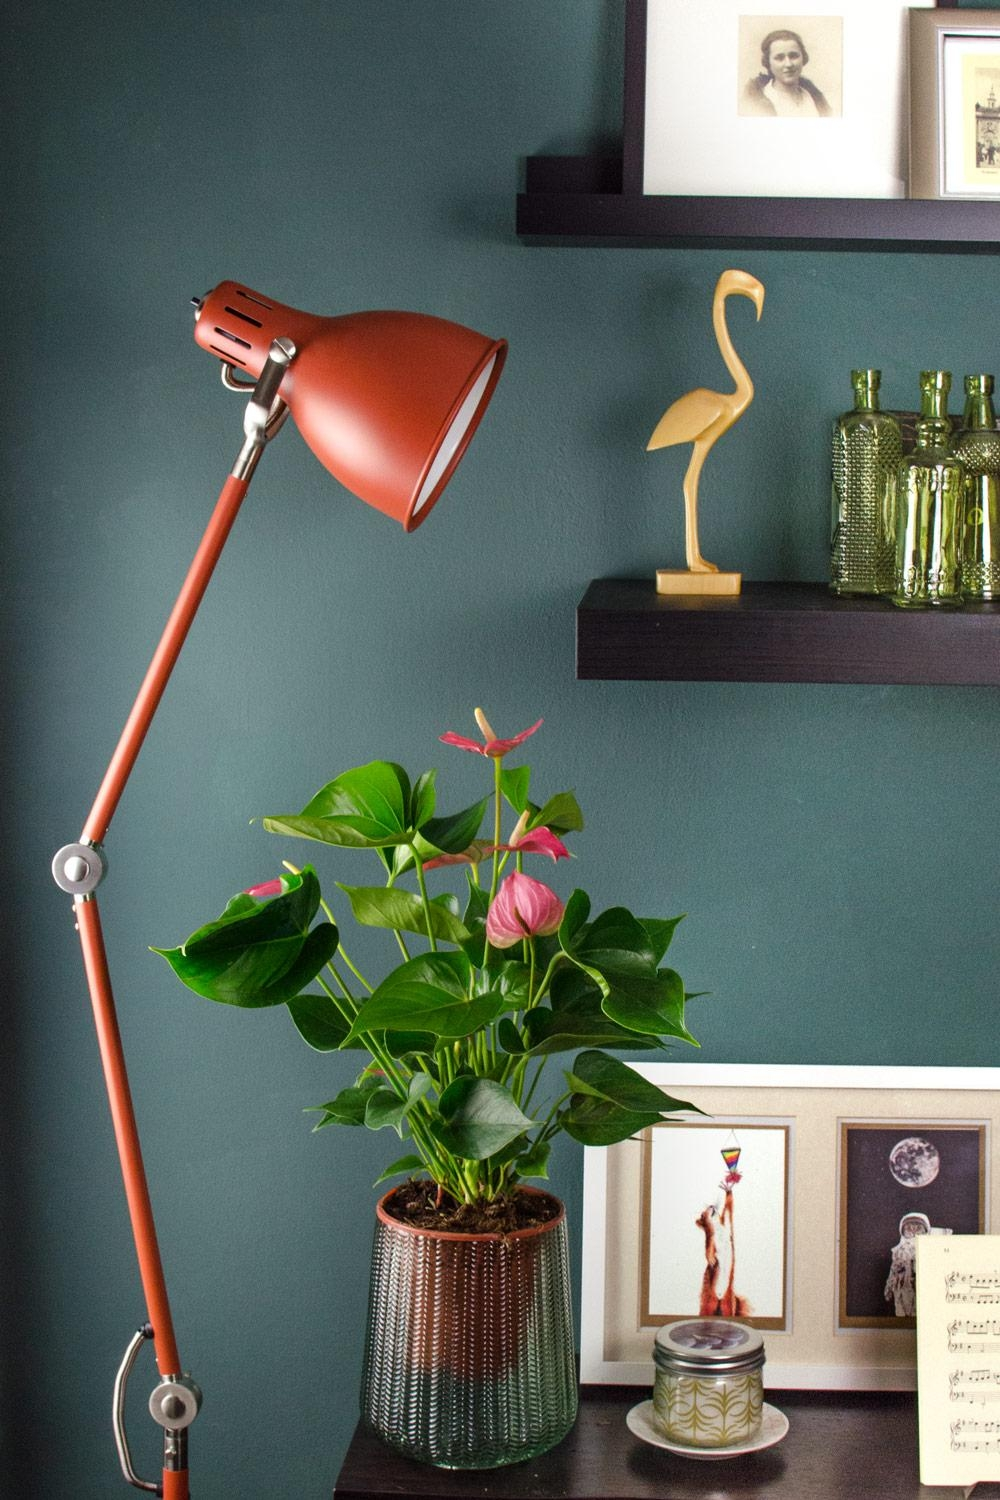 Pantone farbe 2019 coral living nun auch beim stylepeacock coralliving wohntrend darkwalls flamingo boho scandi  0a812978 9d7d 4f0a a2ef 8d6bdb5ec2df